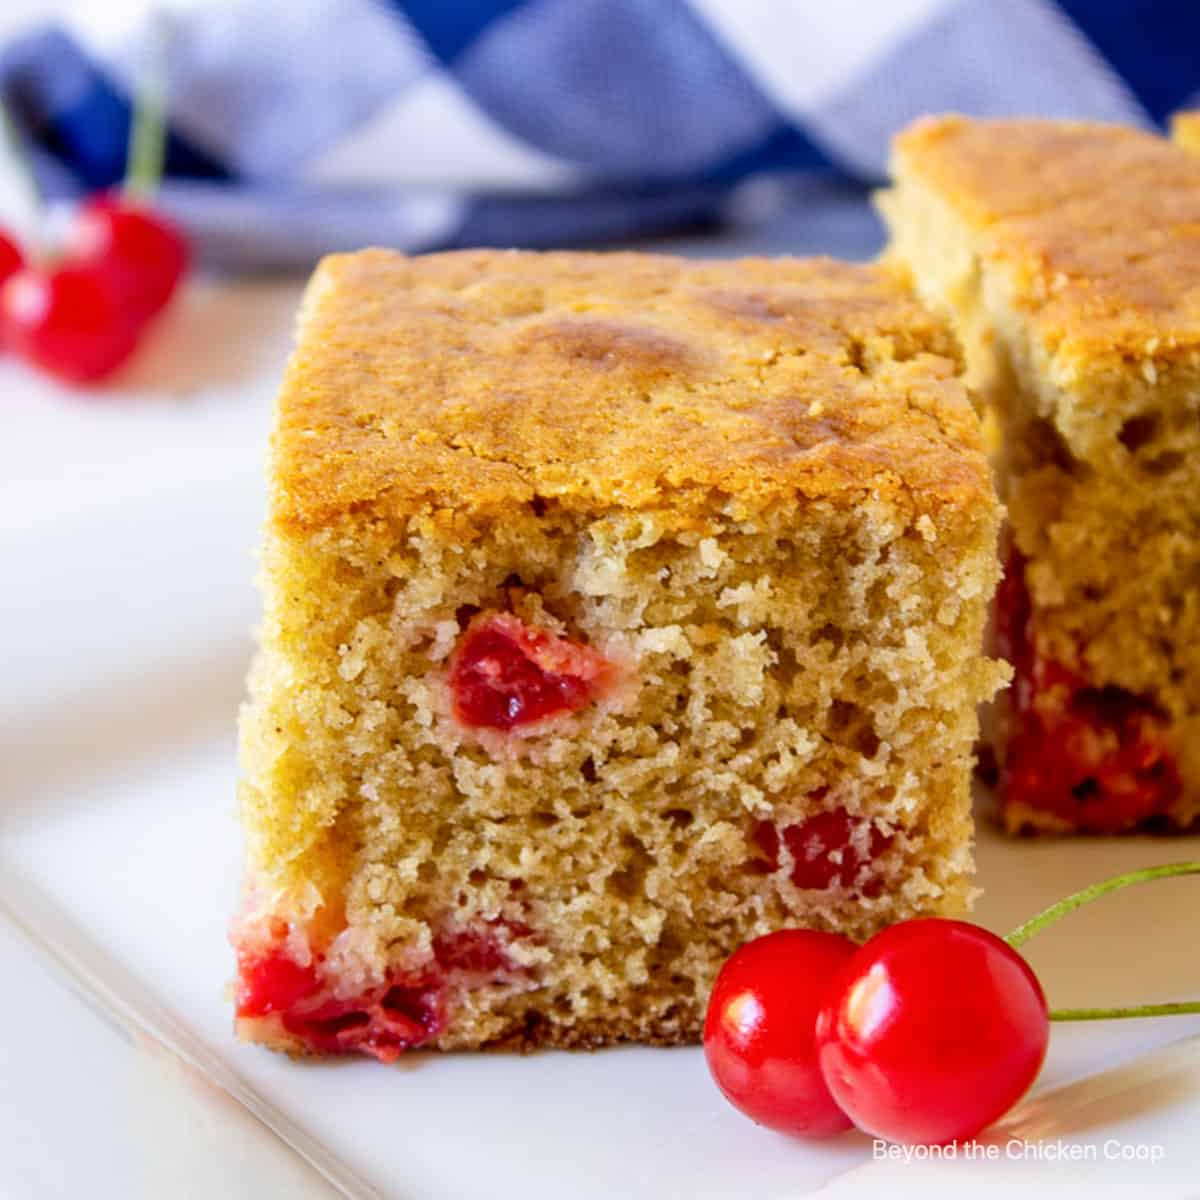 A slice of cherry cake on a white platter.